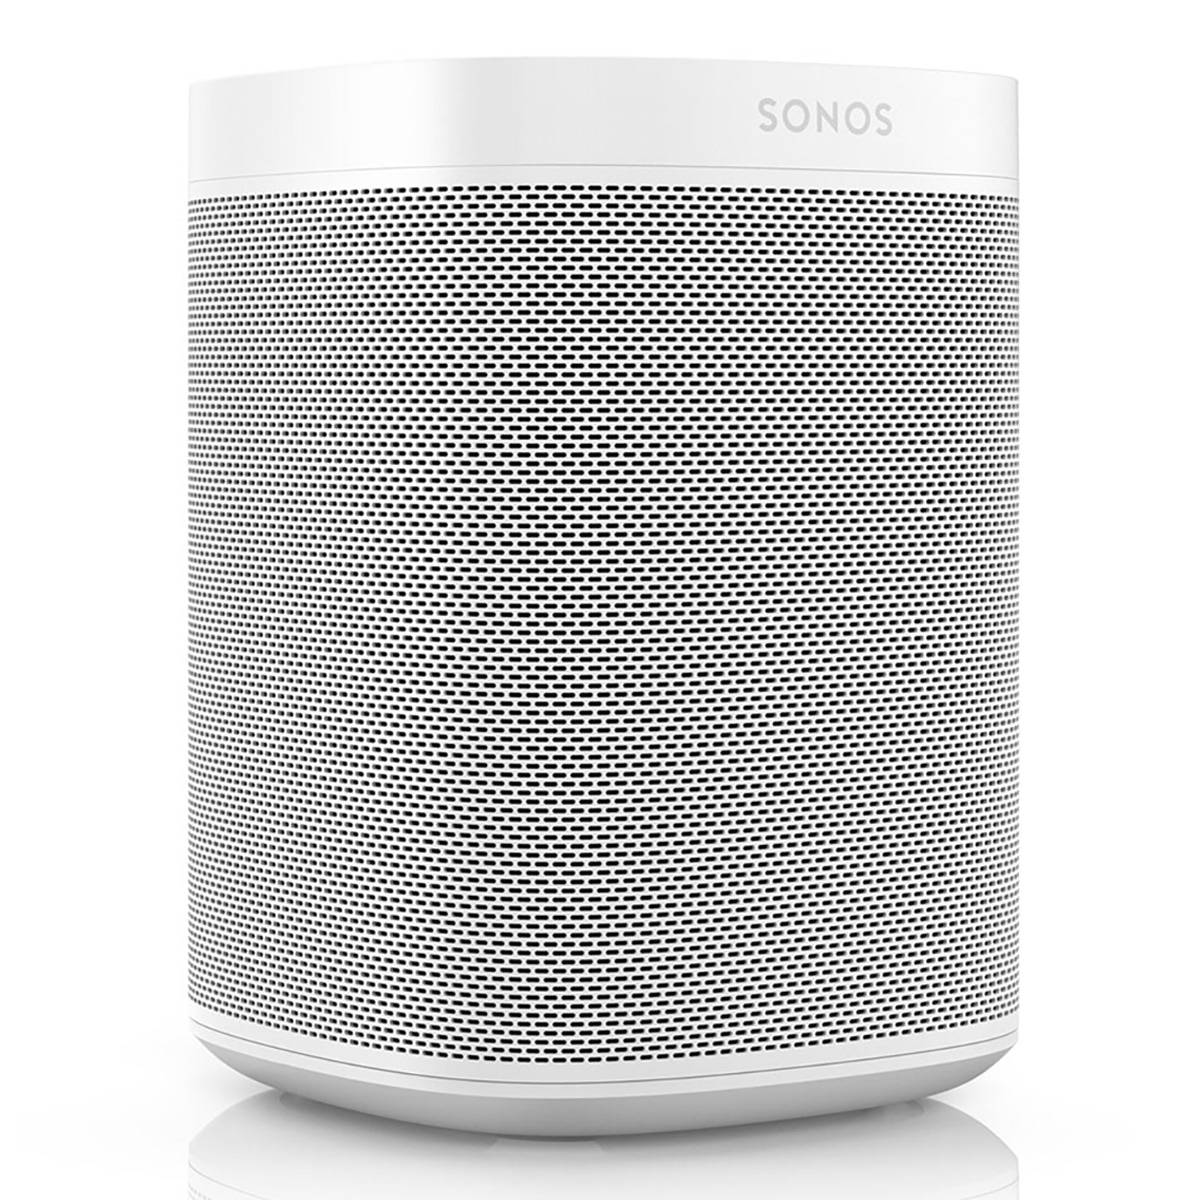 Sonos-Two-Room-Set-with-Sonos-One-Gen-2-Smart-Speaker-with-Alexa-Voice-Control thumbnail 16